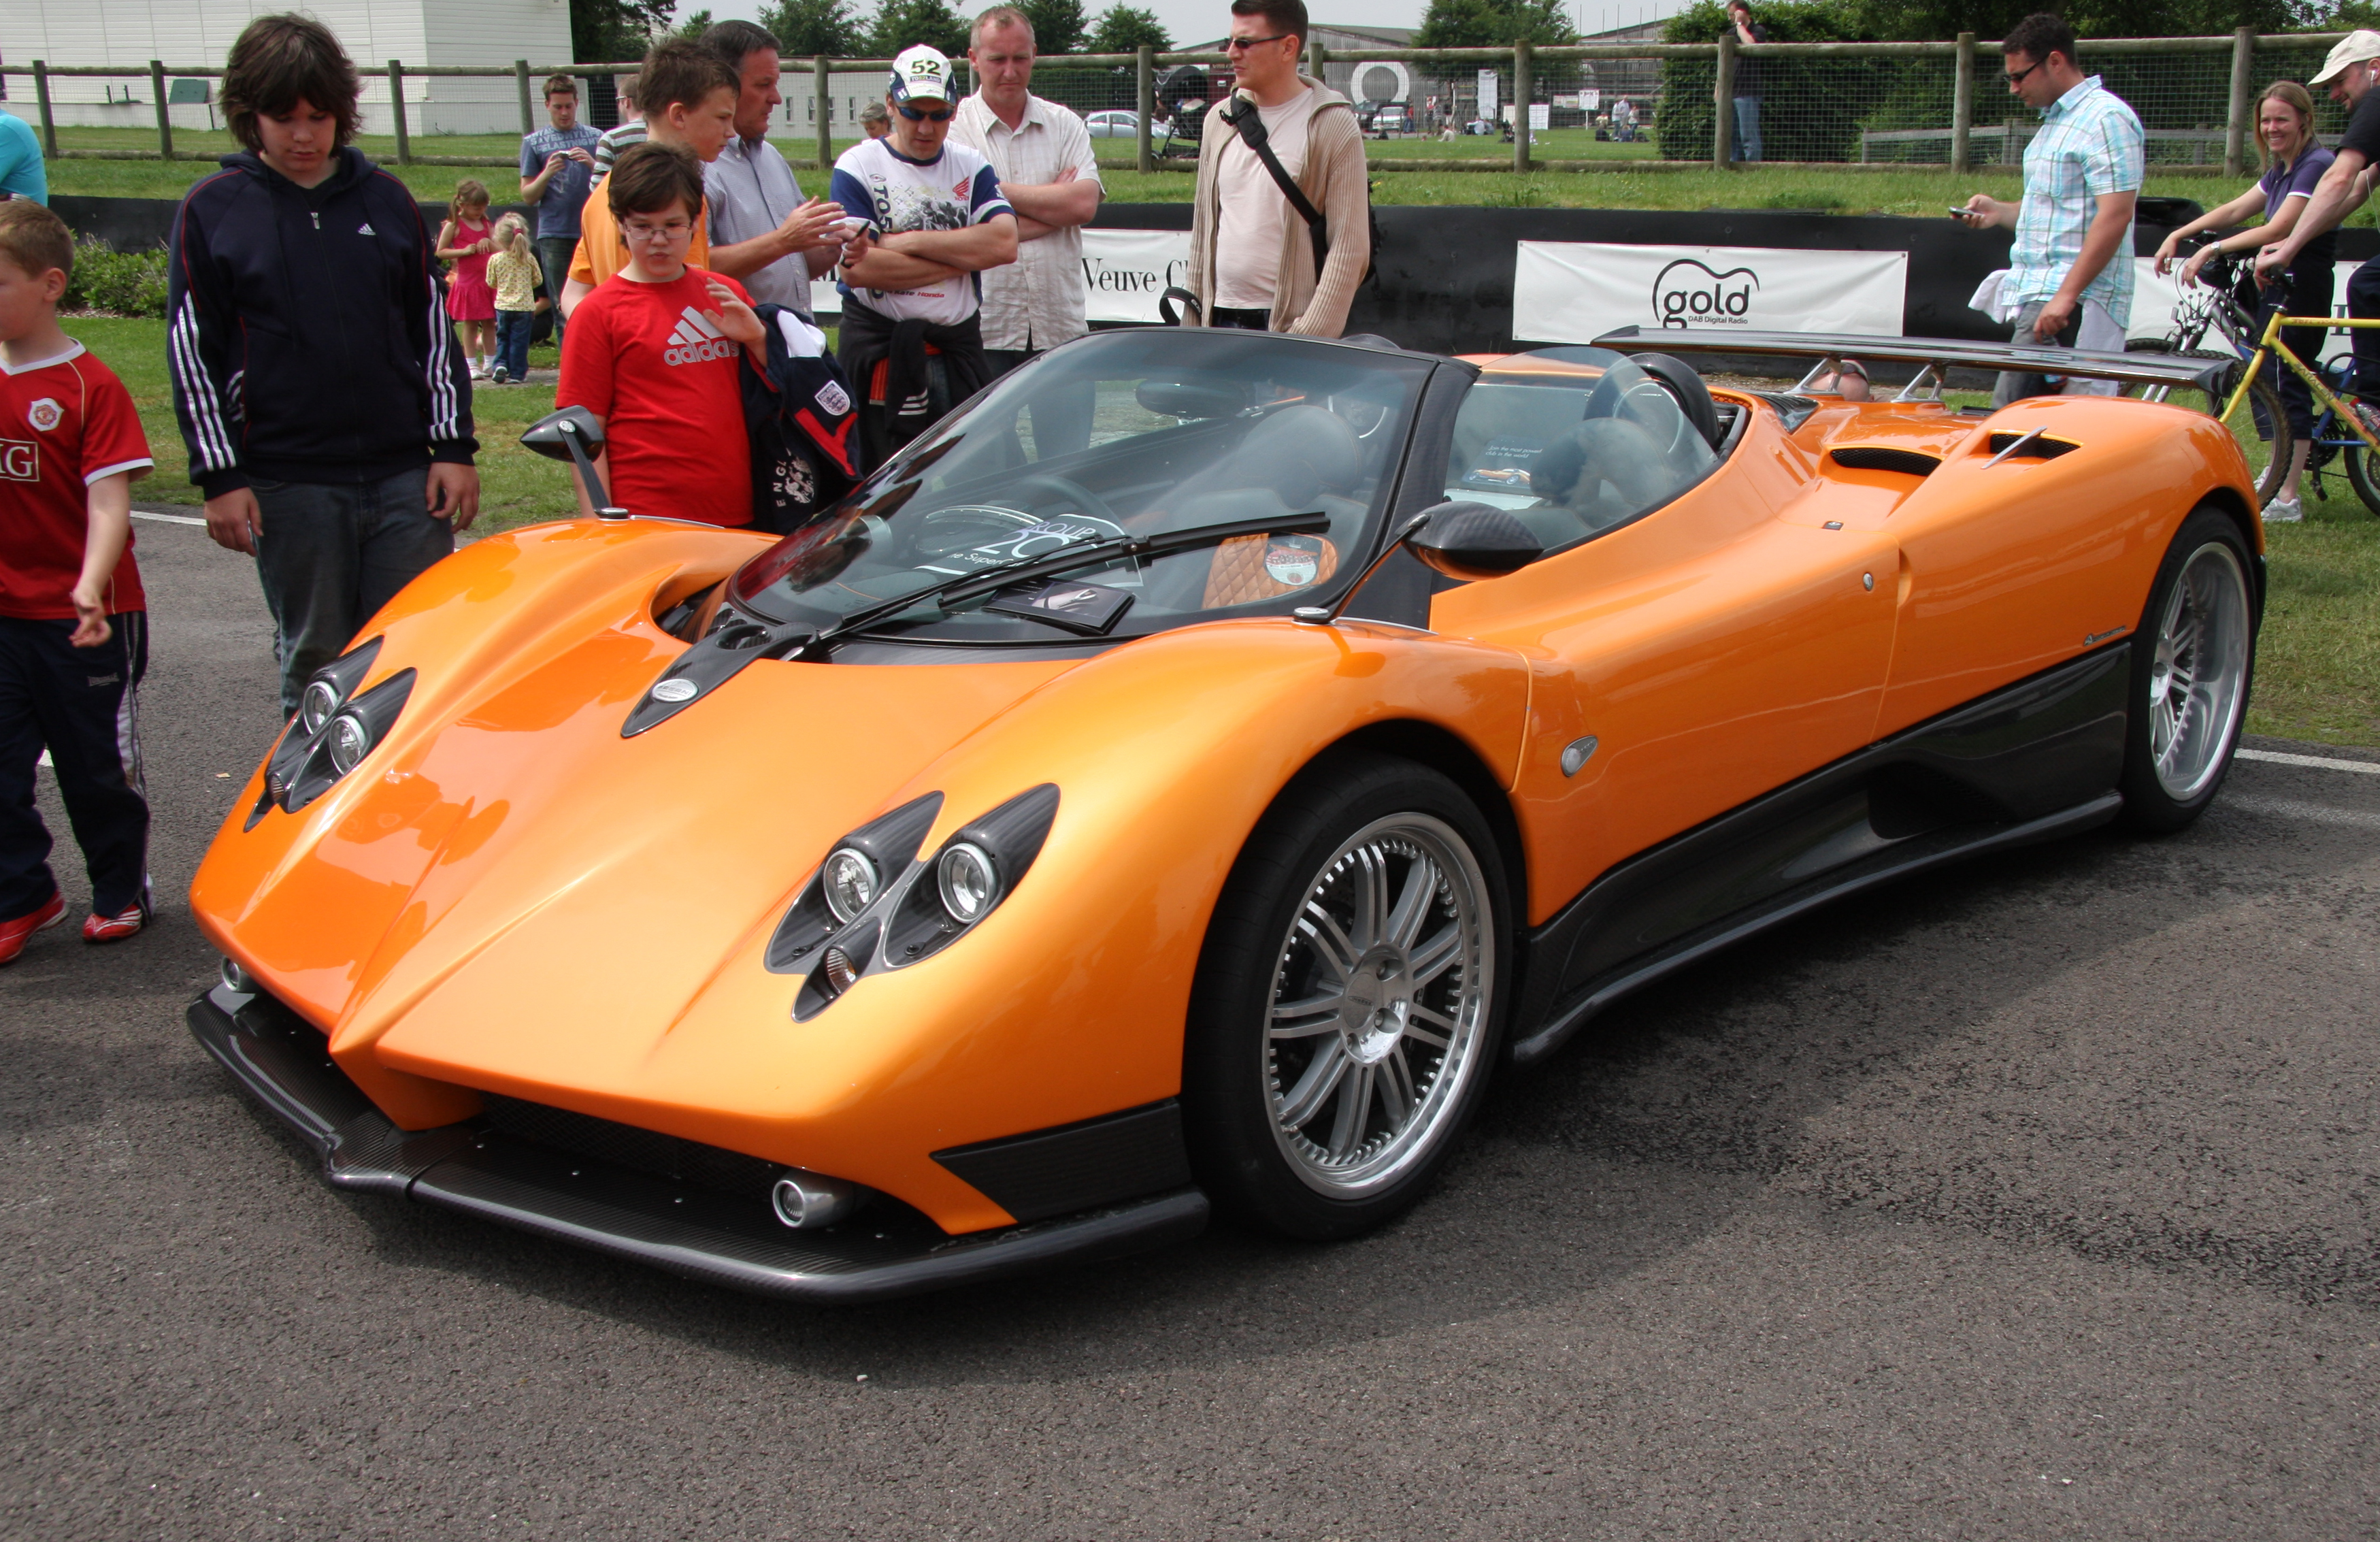 File:Pagani Zonda - Flickr - exfordy (5).jpg - Wikimedia Commons